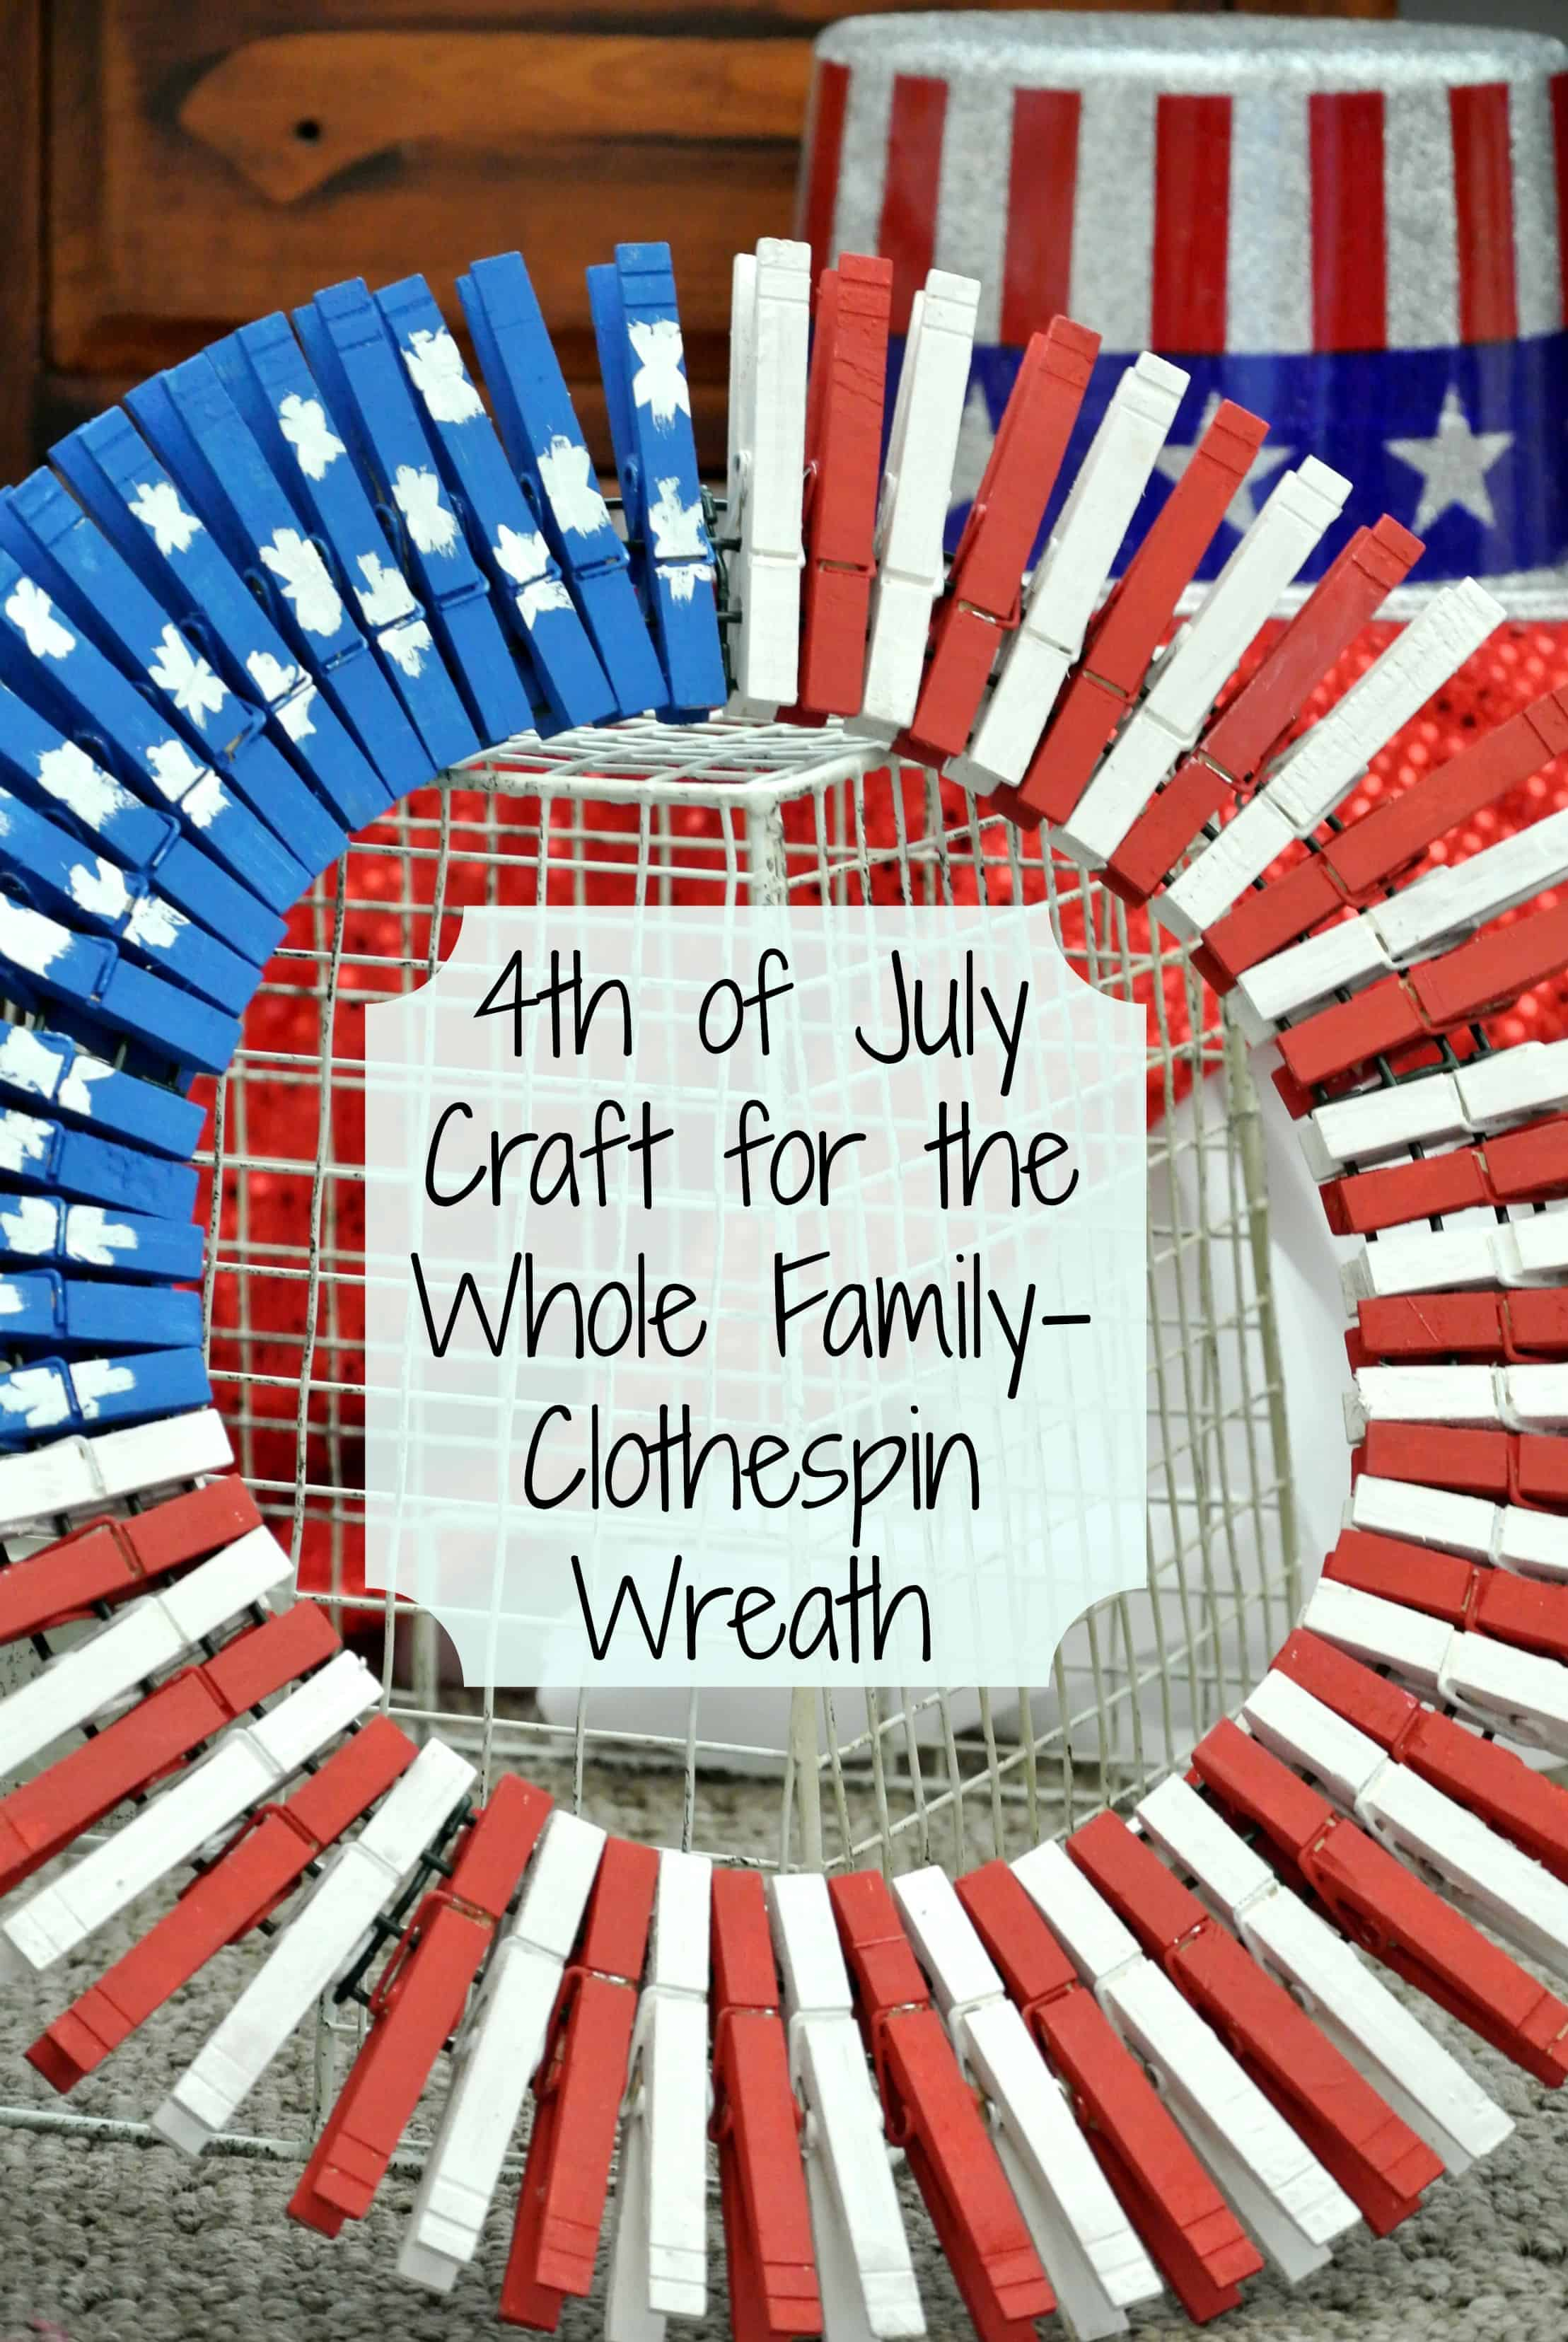 4th of July clothespin wreath title